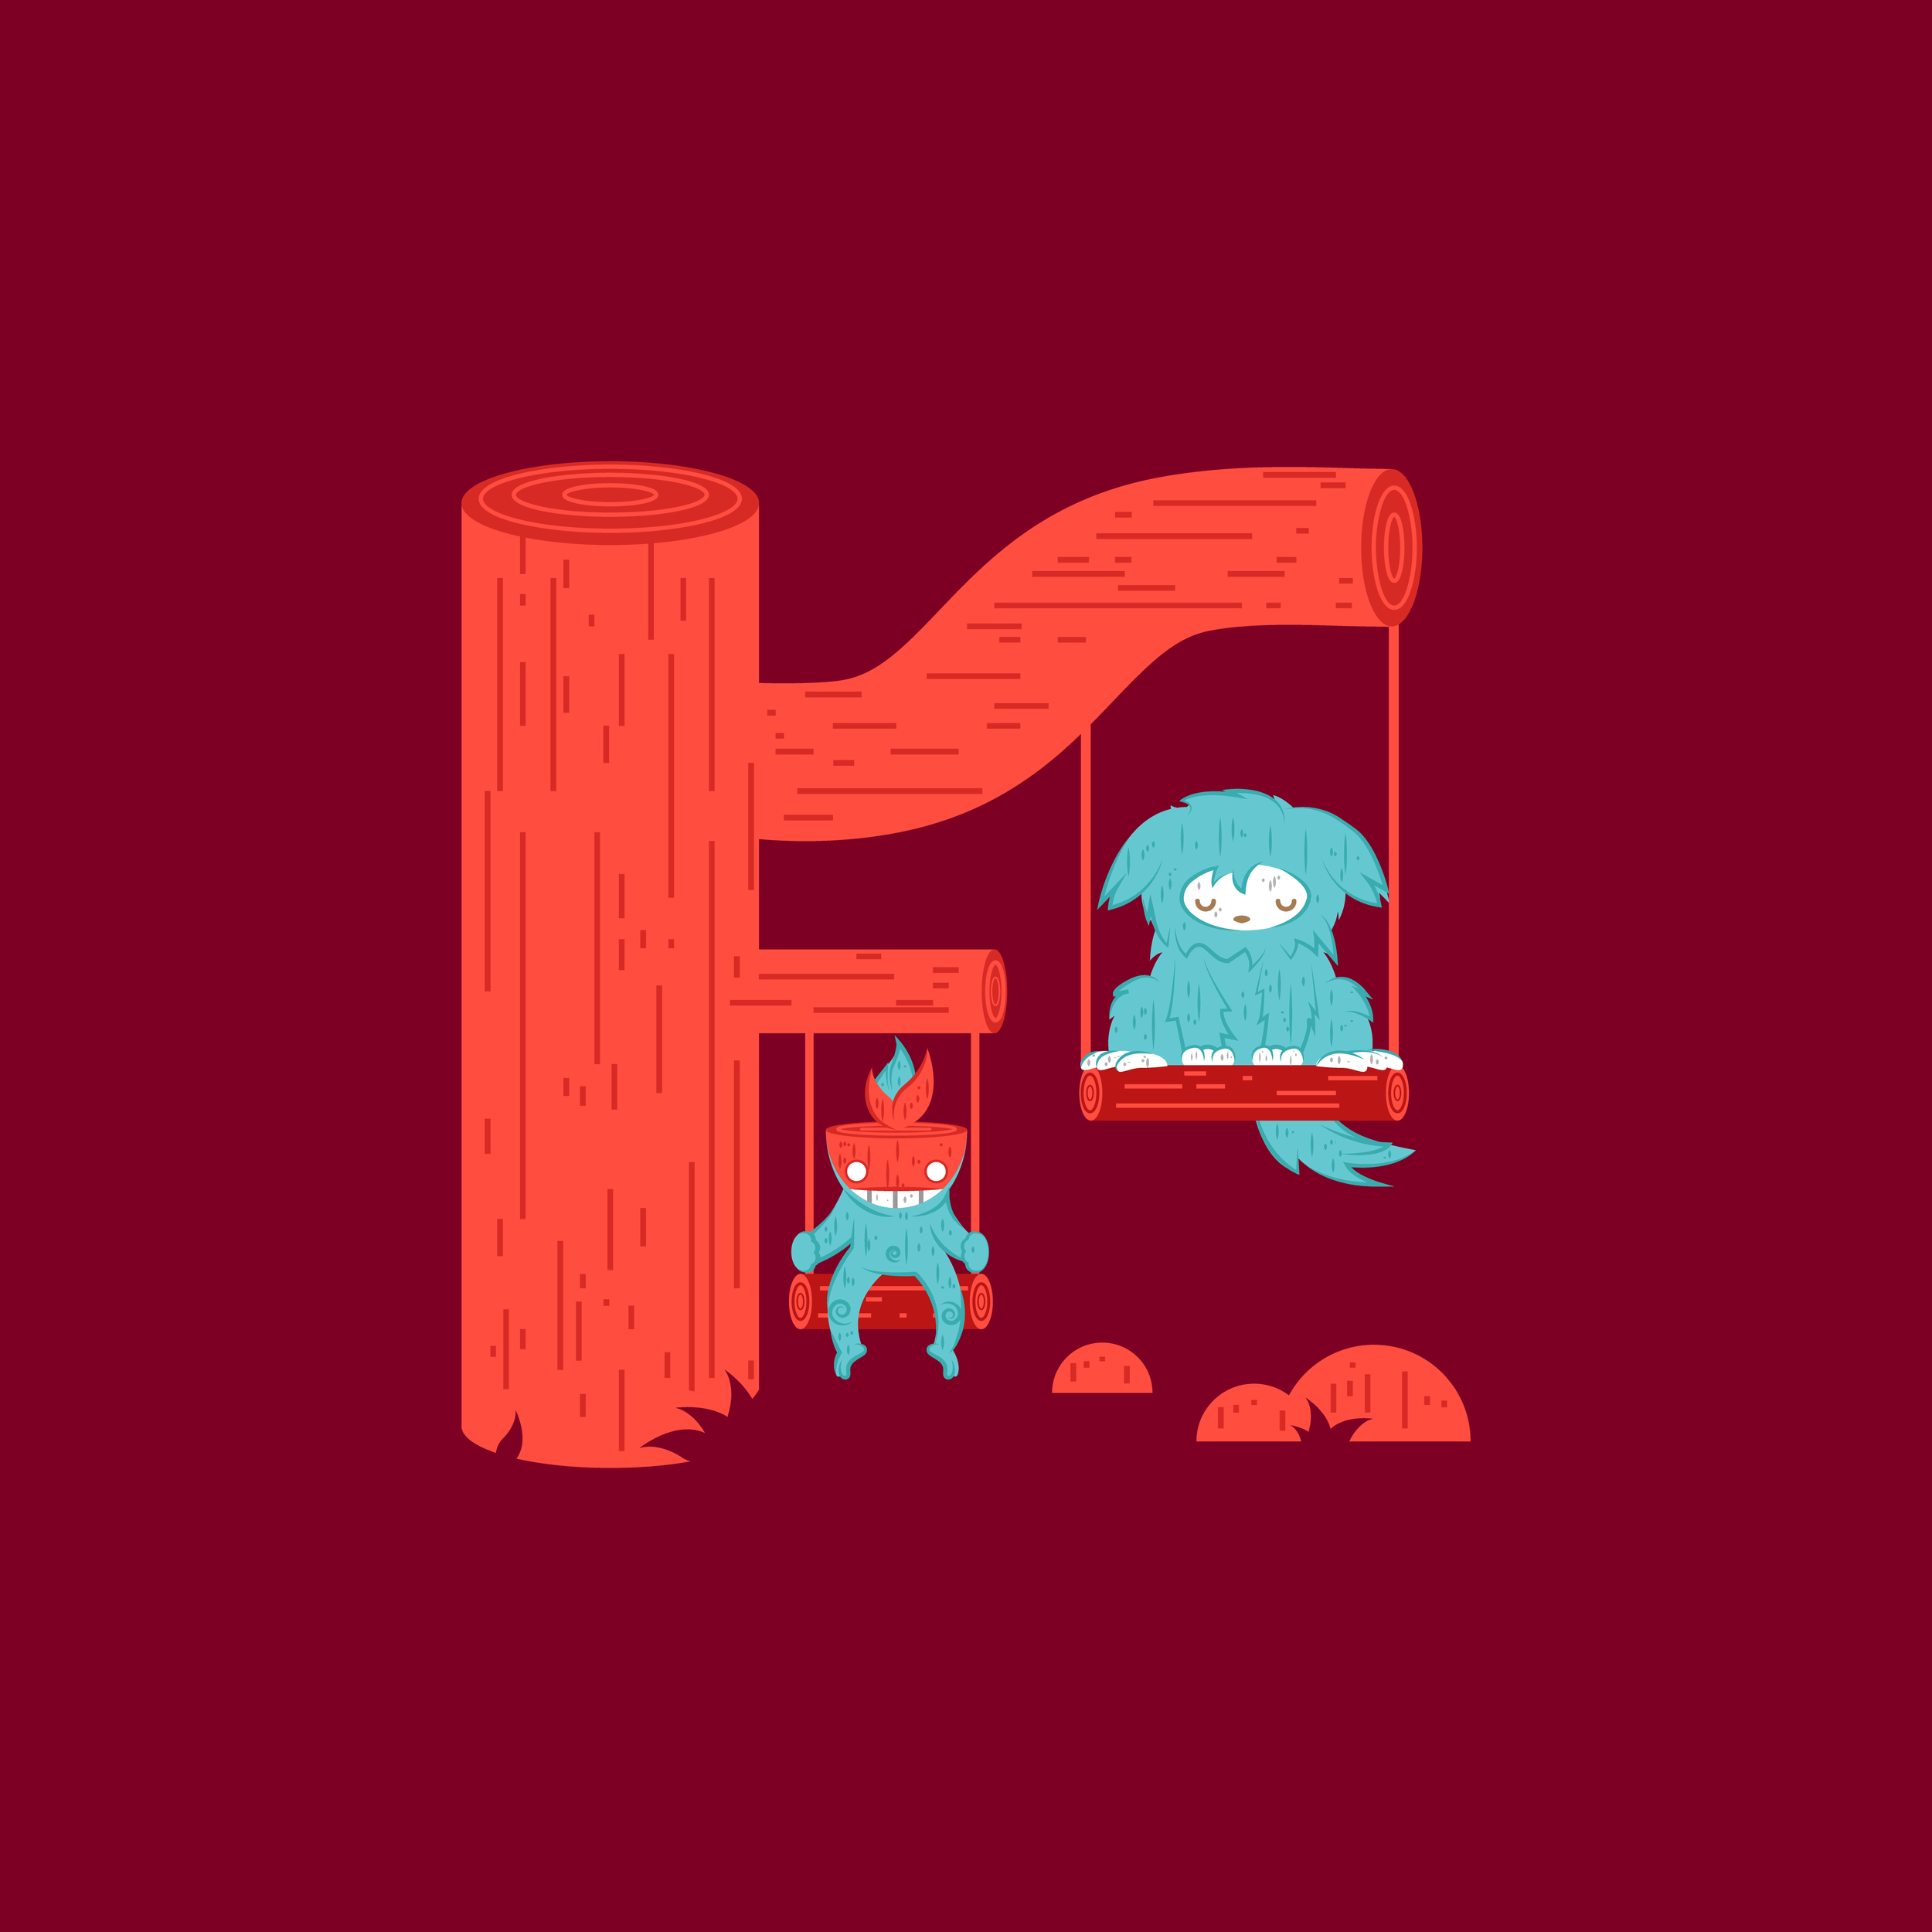 36 Days of Type_V01-06.png